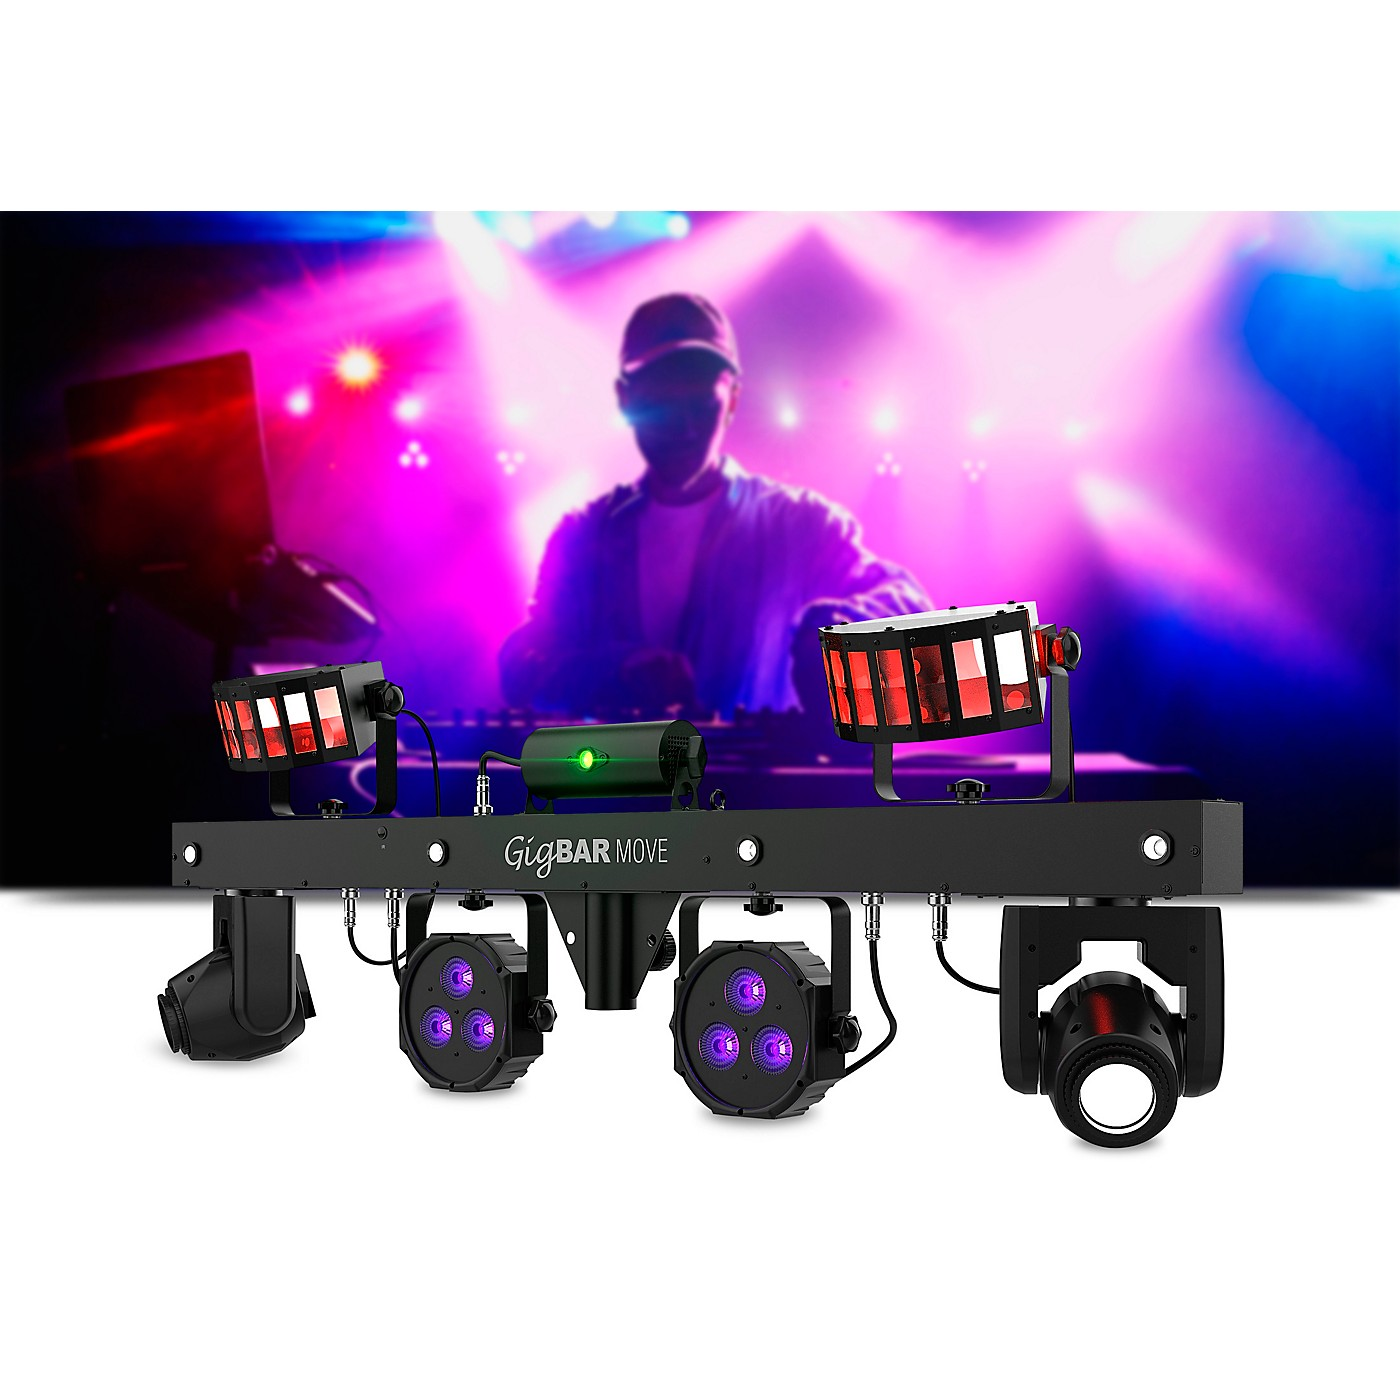 CHAUVET DJ GigBAR Move 5-in-1 LED and Laser Lighting Effects Bar thumbnail